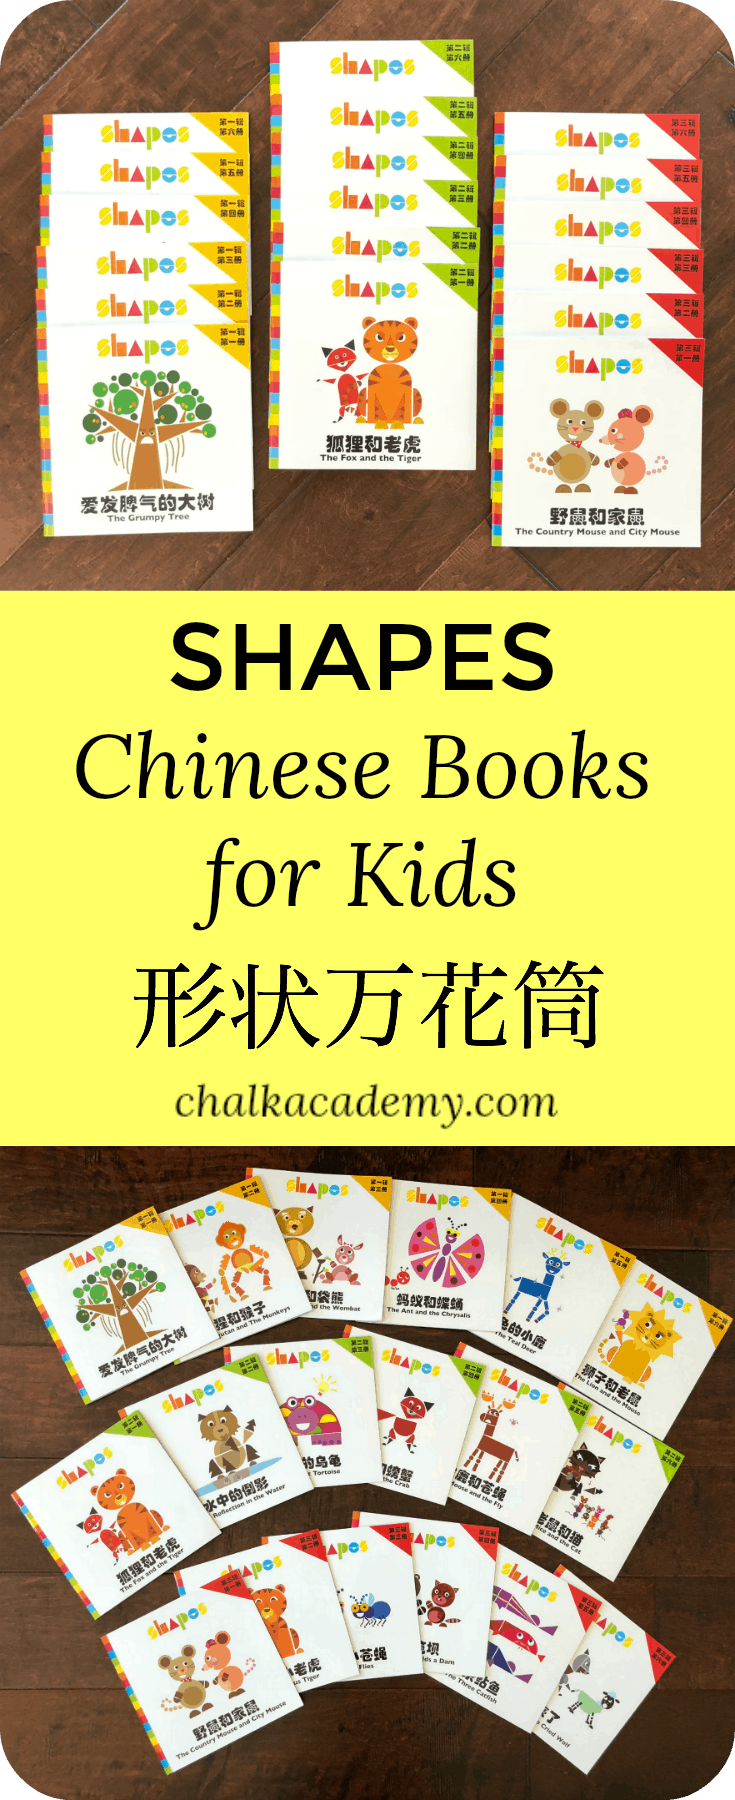 Shapes Chinese Books 形状万花筒 is an excellent series of books for the budding reader.  Large Chinese characters are on separate pages from the cute and clever illustrations that kids will love!  Each story concludes with a positive message as well as full English translation and pinyin reference.